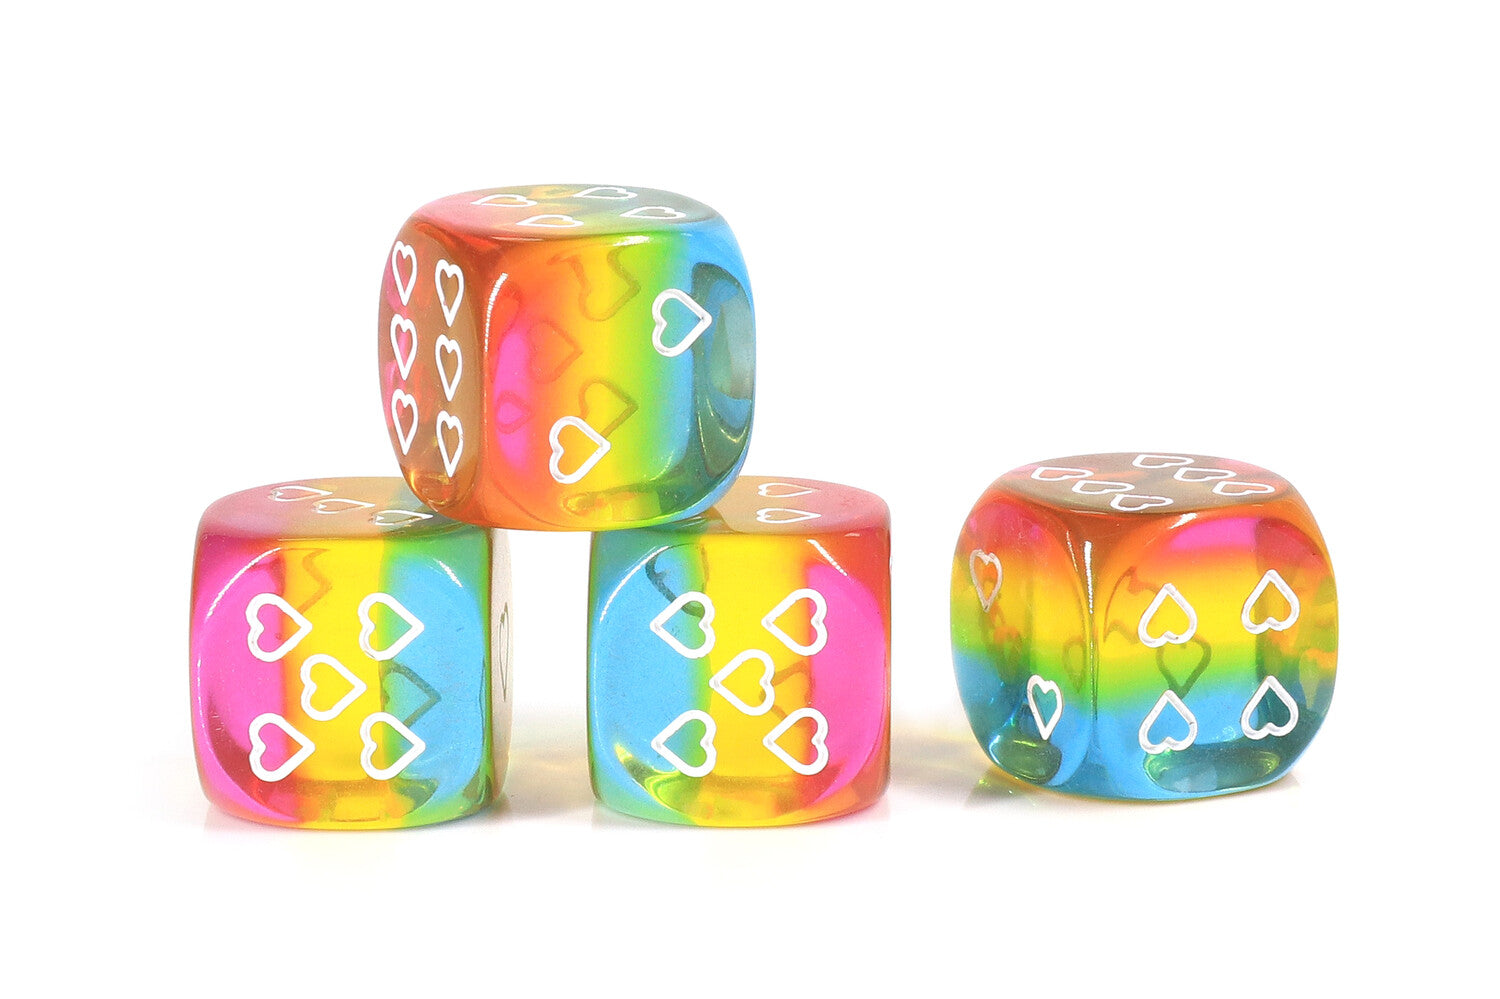 HeartBeat Dice: Translucent Pansexual Pride D6 Heart Dice 16mm (Set of 6 dice)